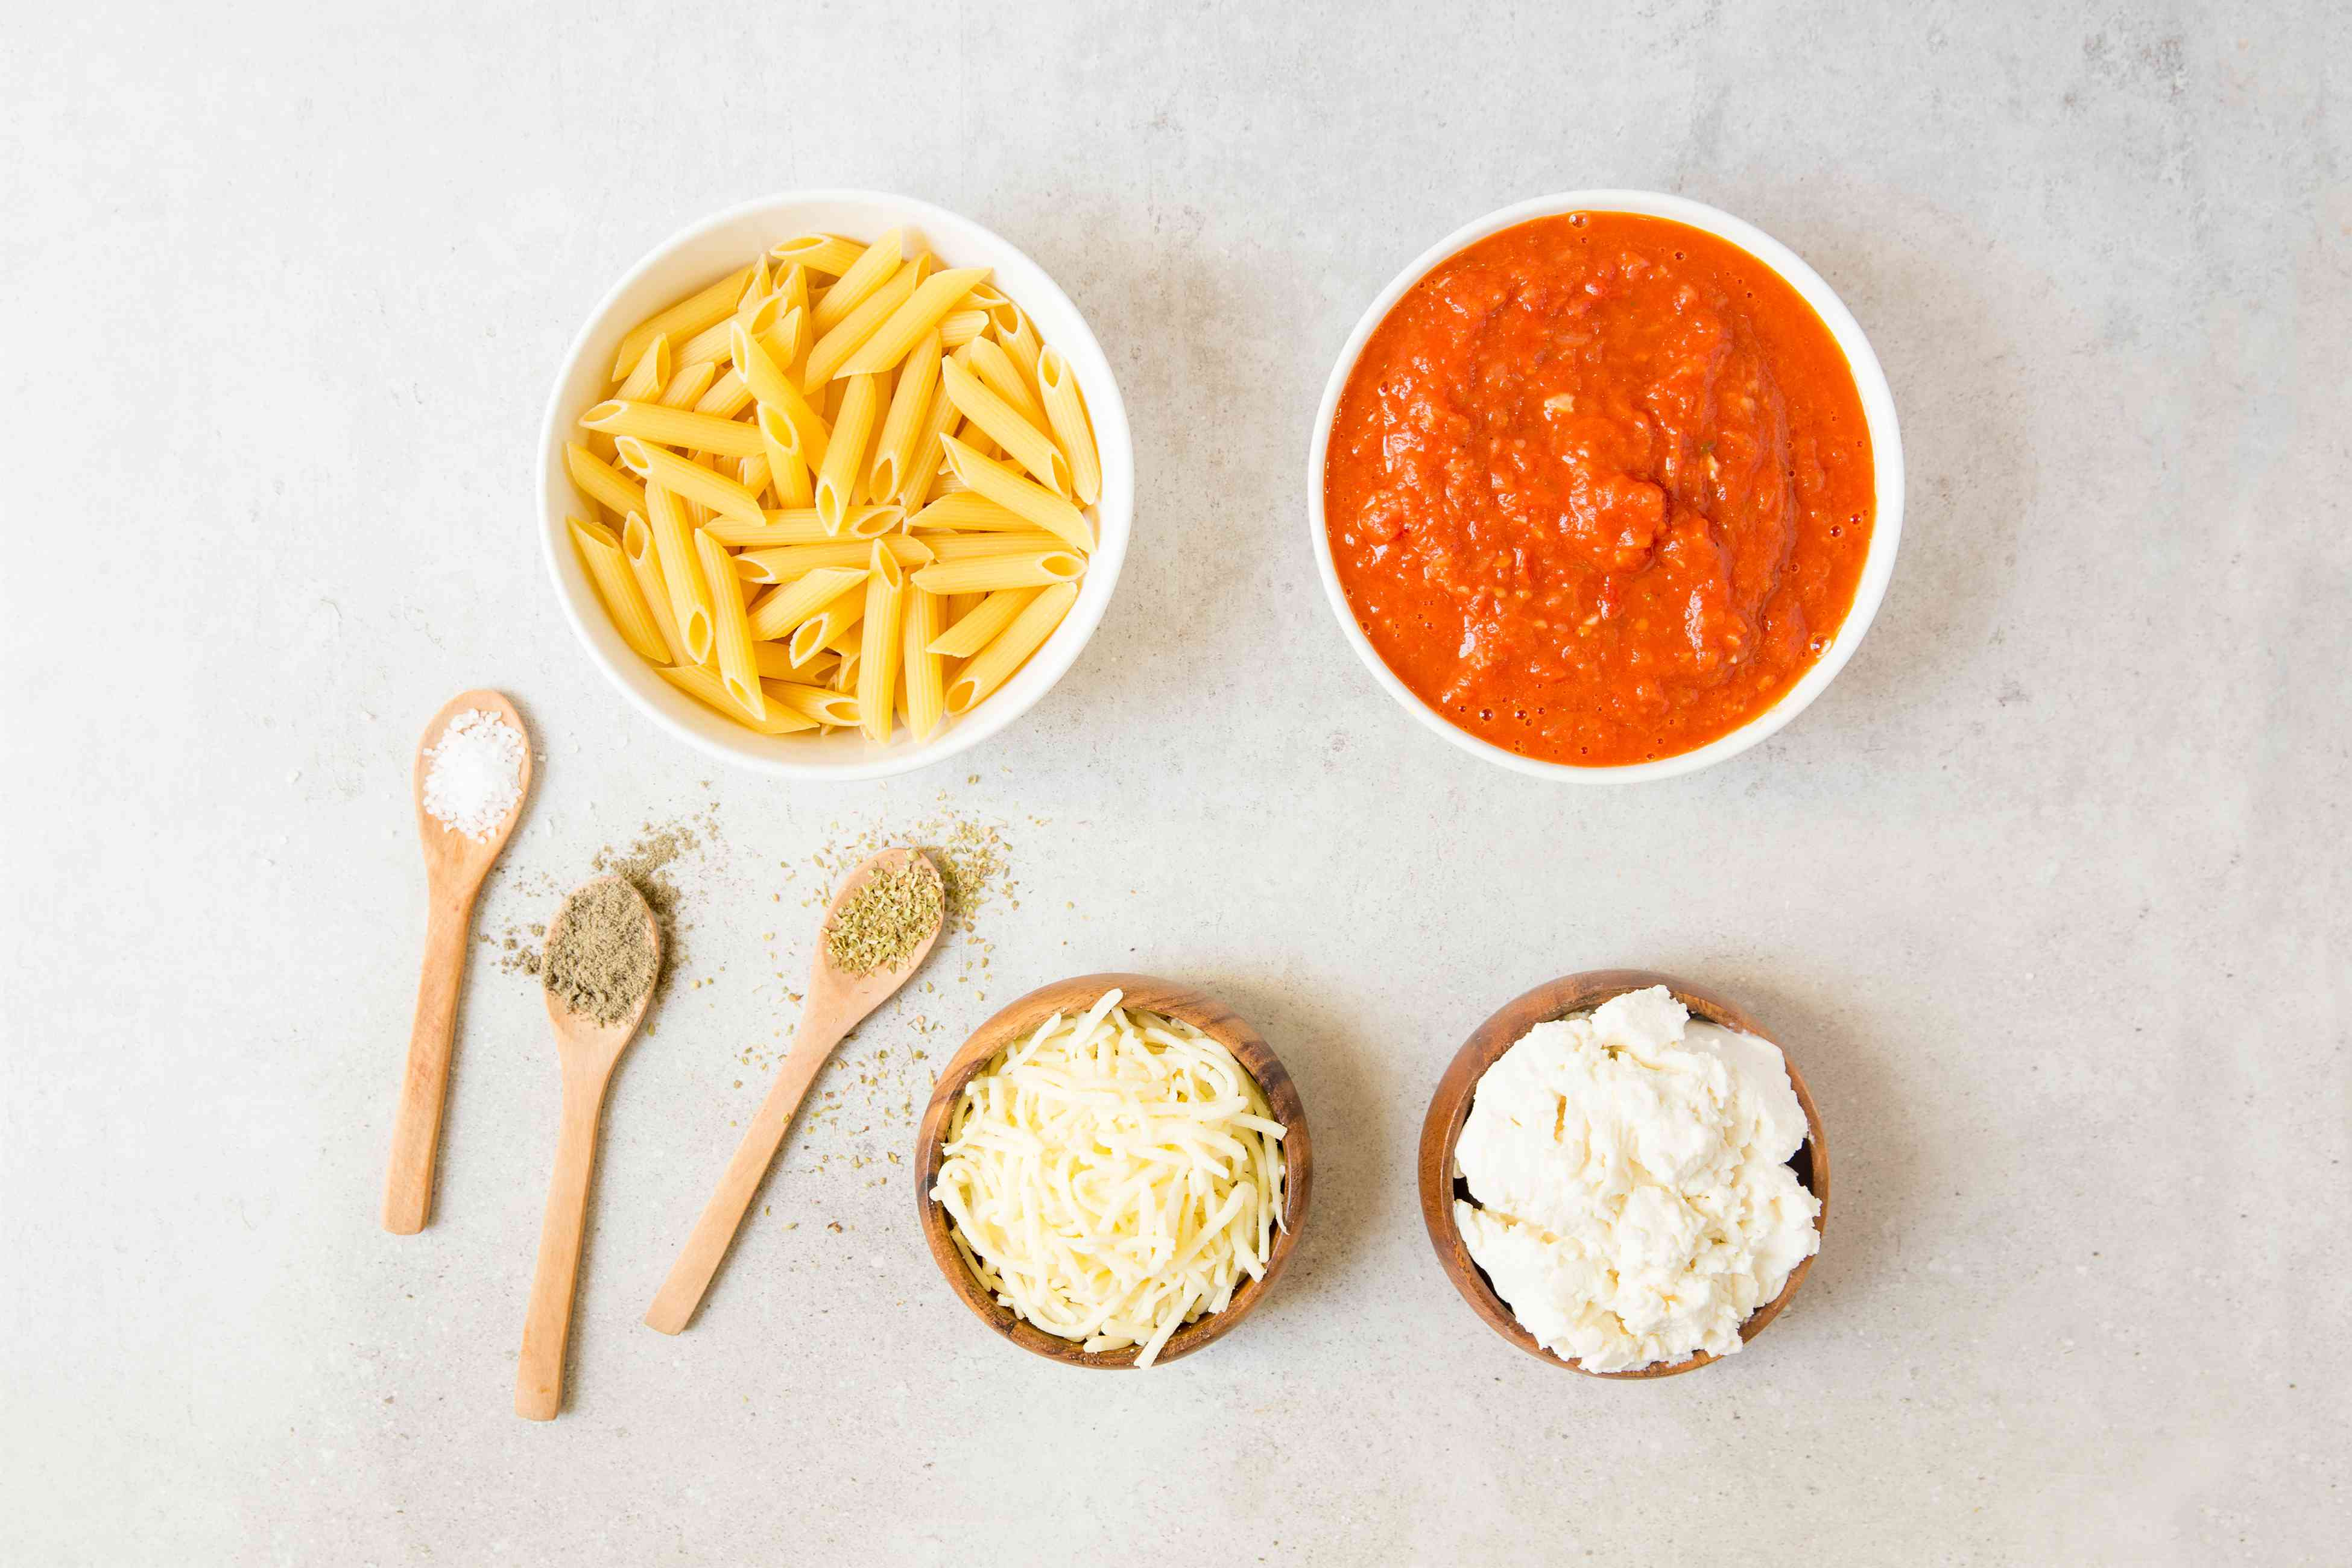 Ingredients for oven baked pasta recipe